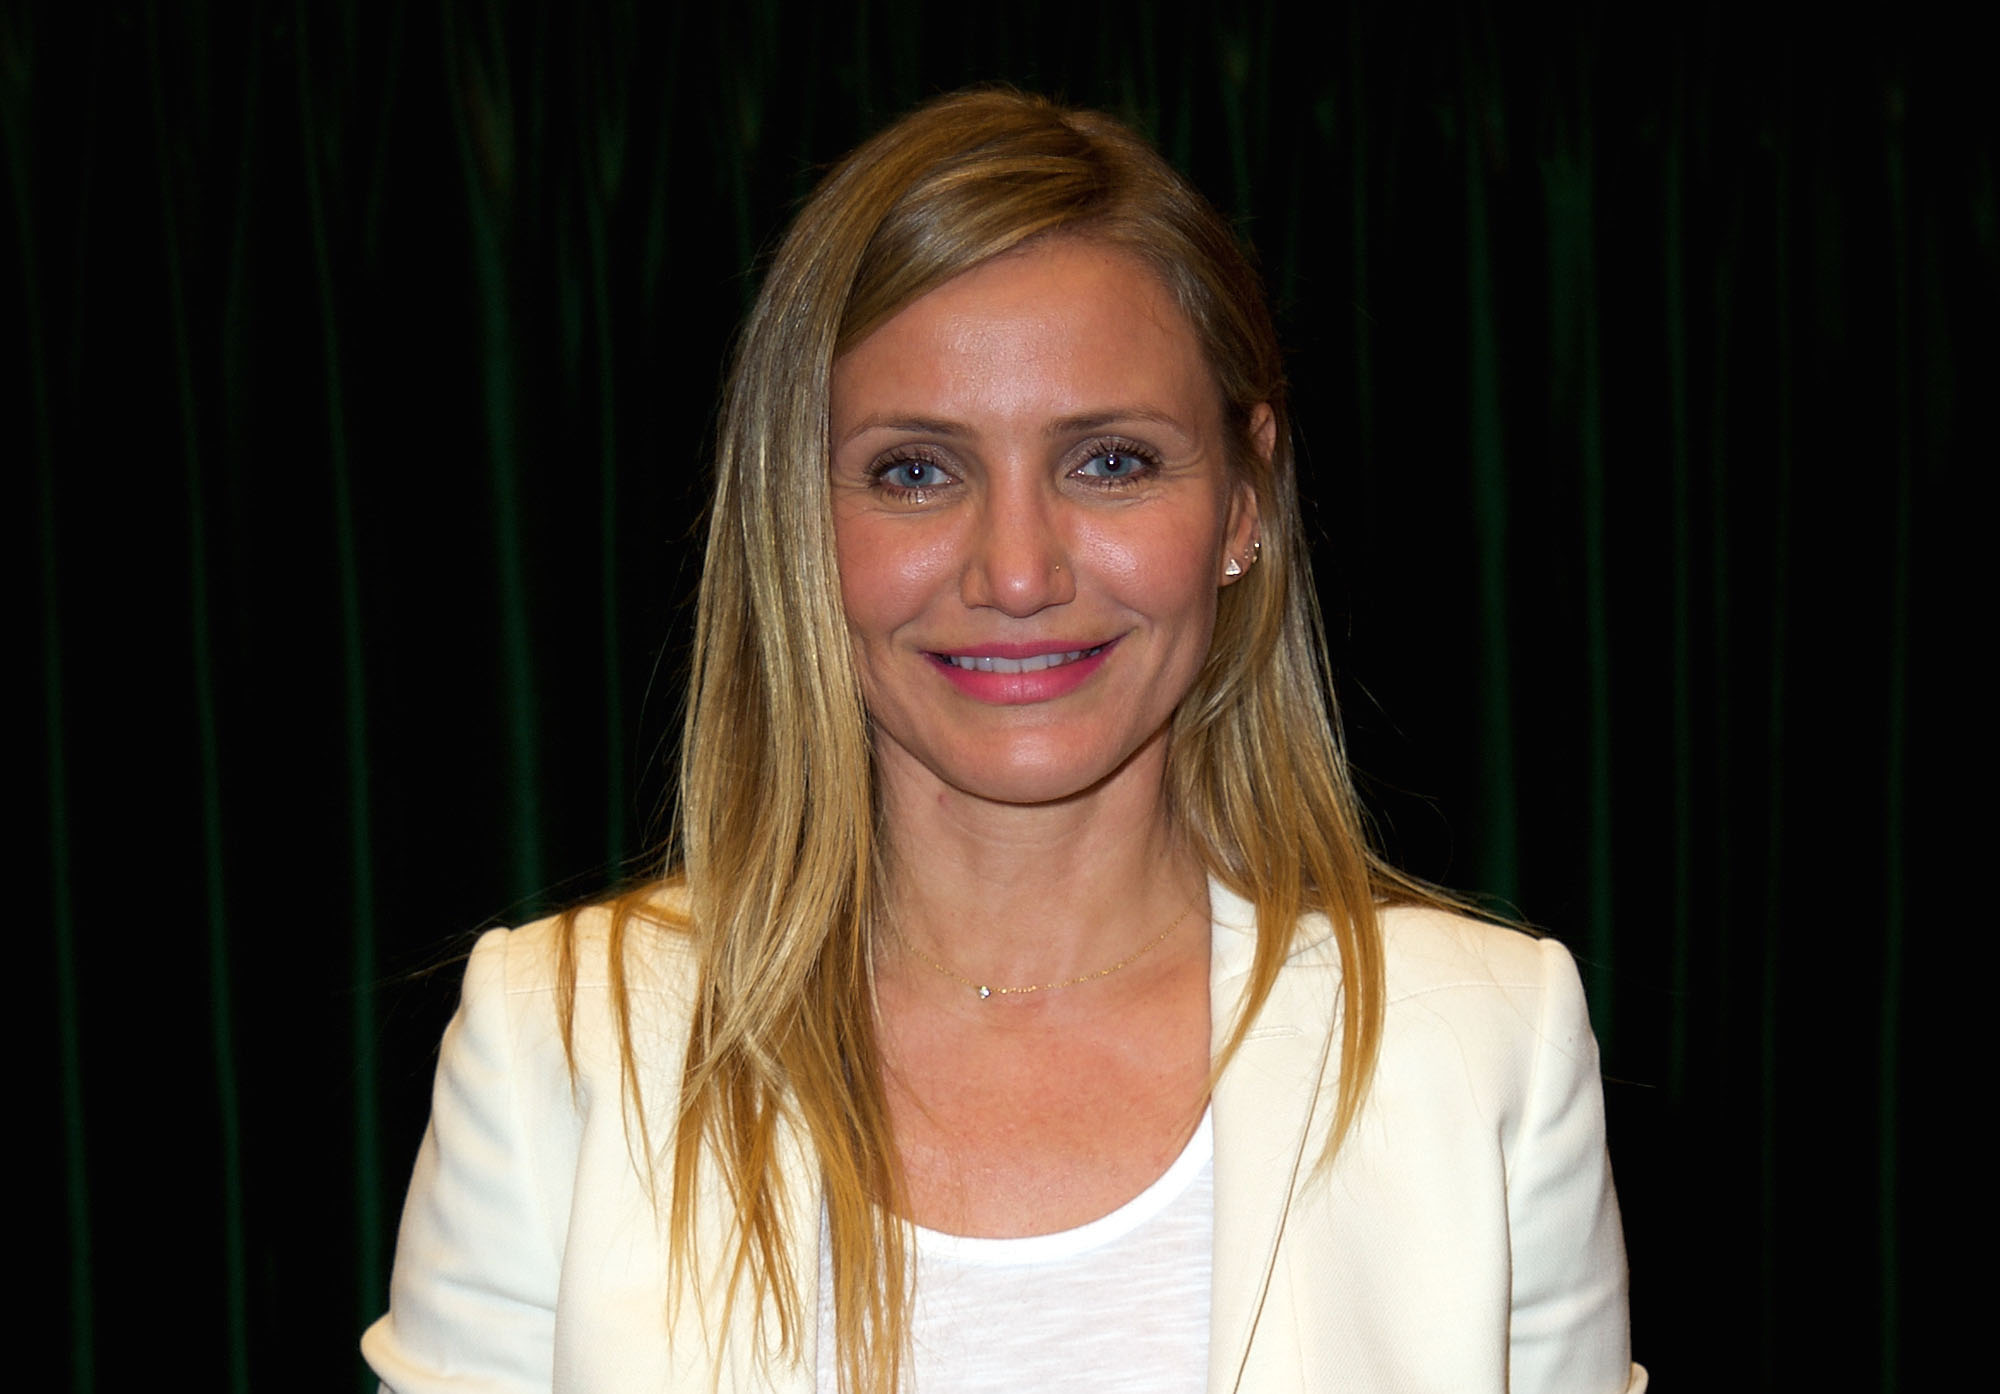 We now know why we haven't seen Cameron Diaz lately ...Cameron Diaz